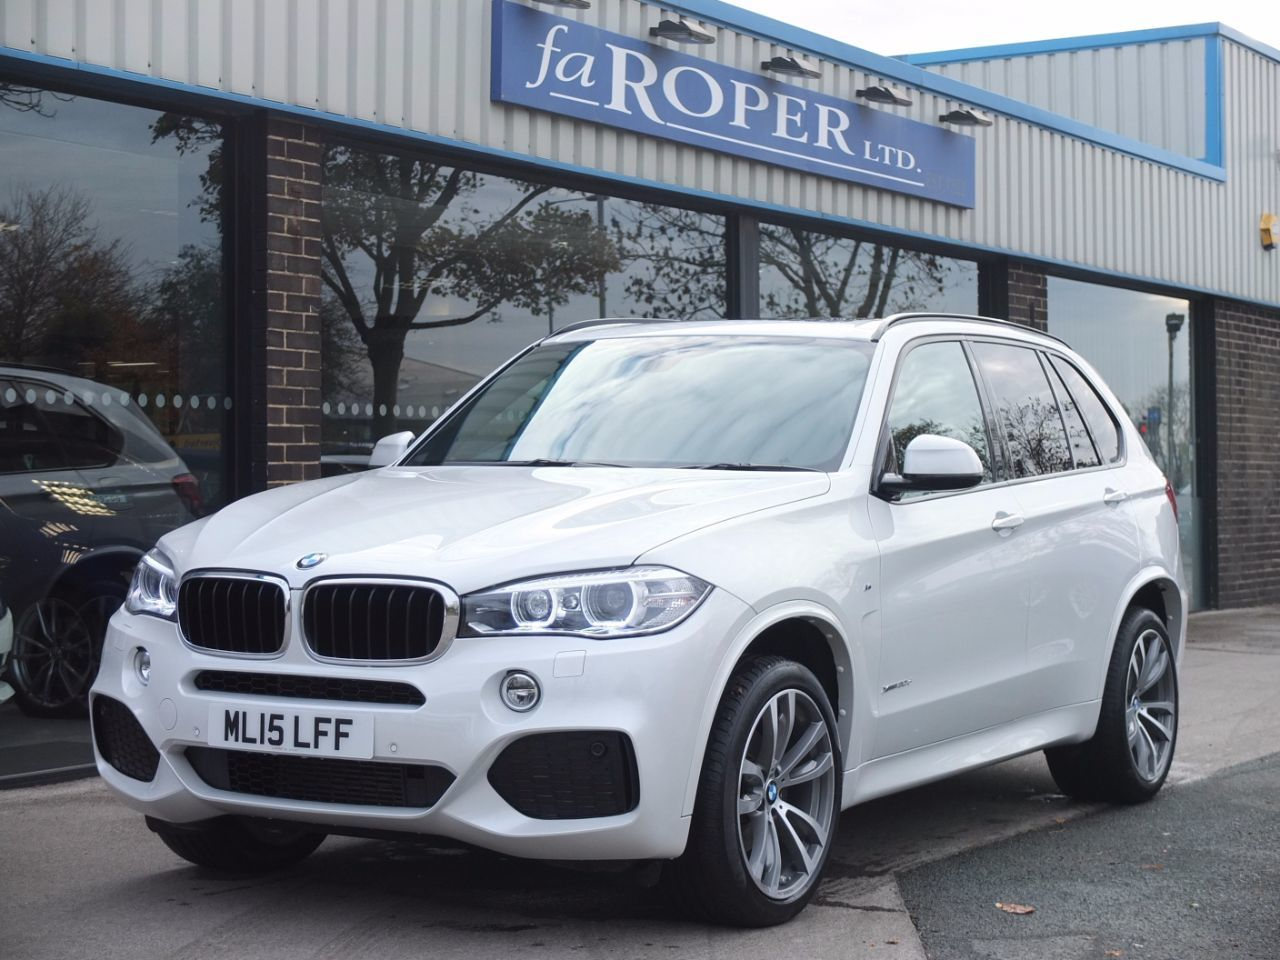 BMW X5 3.0 xDrive30d M Sport Auto Estate Diesel Mineral White MetallicBMW X5 3.0 xDrive30d M Sport Auto Estate Diesel Mineral White Metallic at fa Roper Ltd Bradford